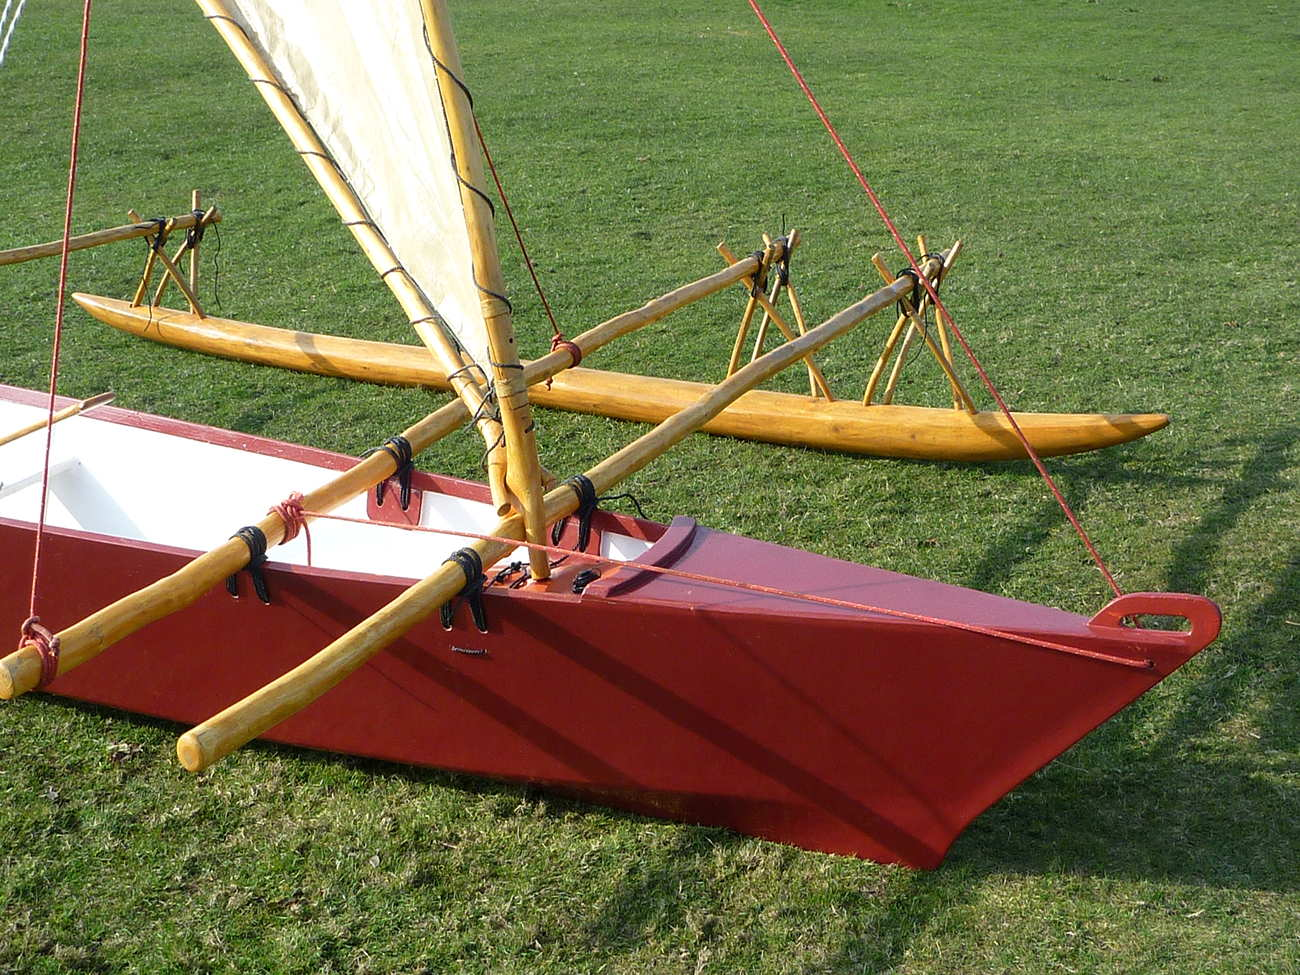 Dark red Melanesia outrigger canoe on land, close up of bow and float